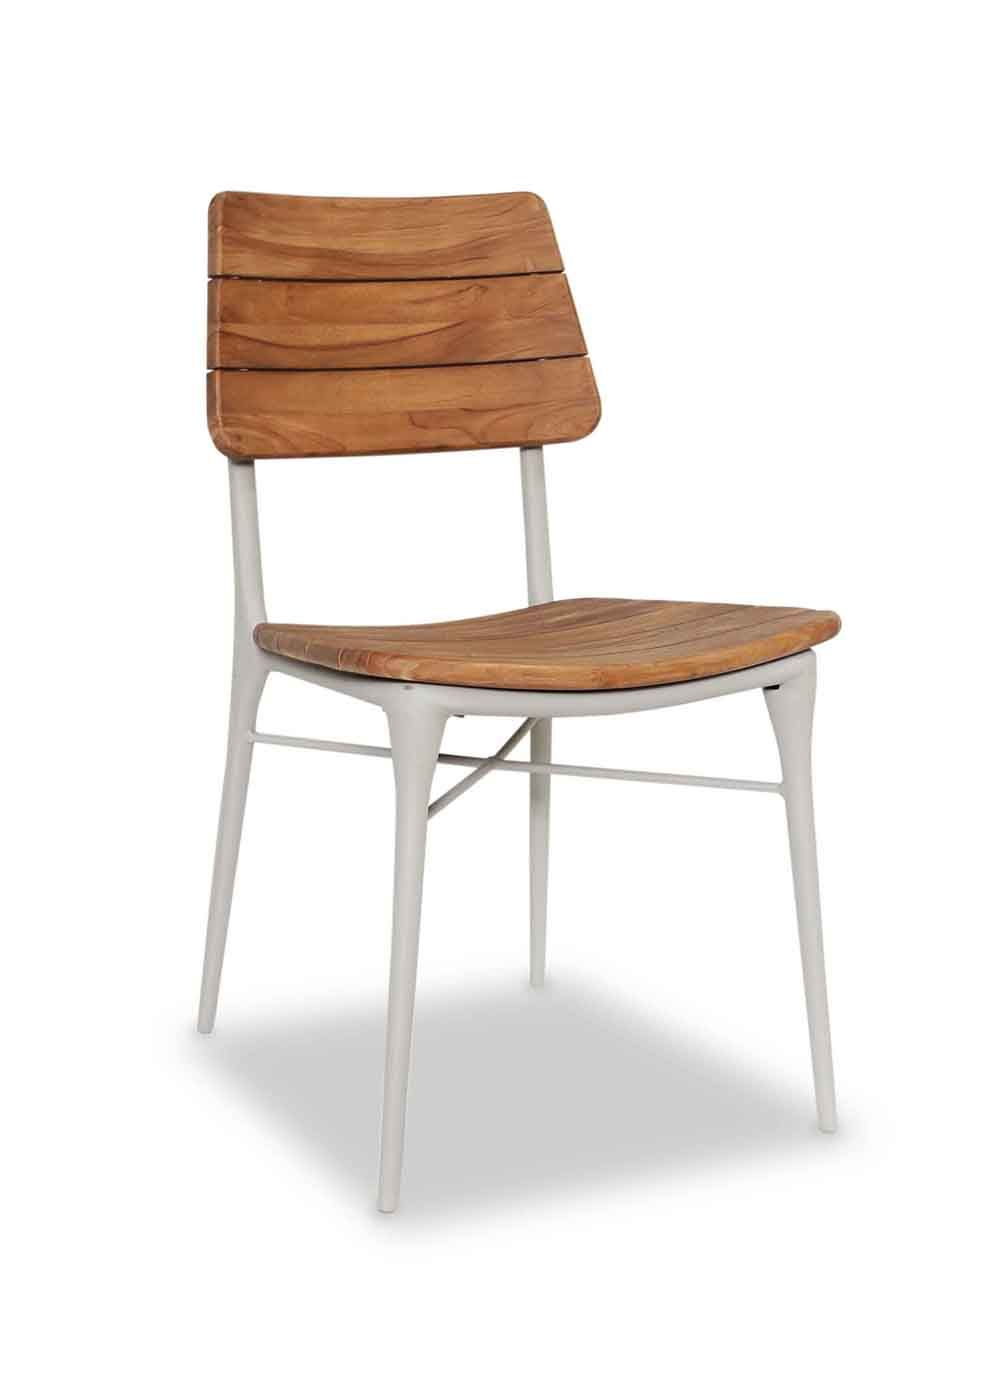 The Astrea Side Chair Is Cast Aluminum With A Teak Wood Seat And Intended For Quinn Teak Sofa Chairs (View 25 of 25)